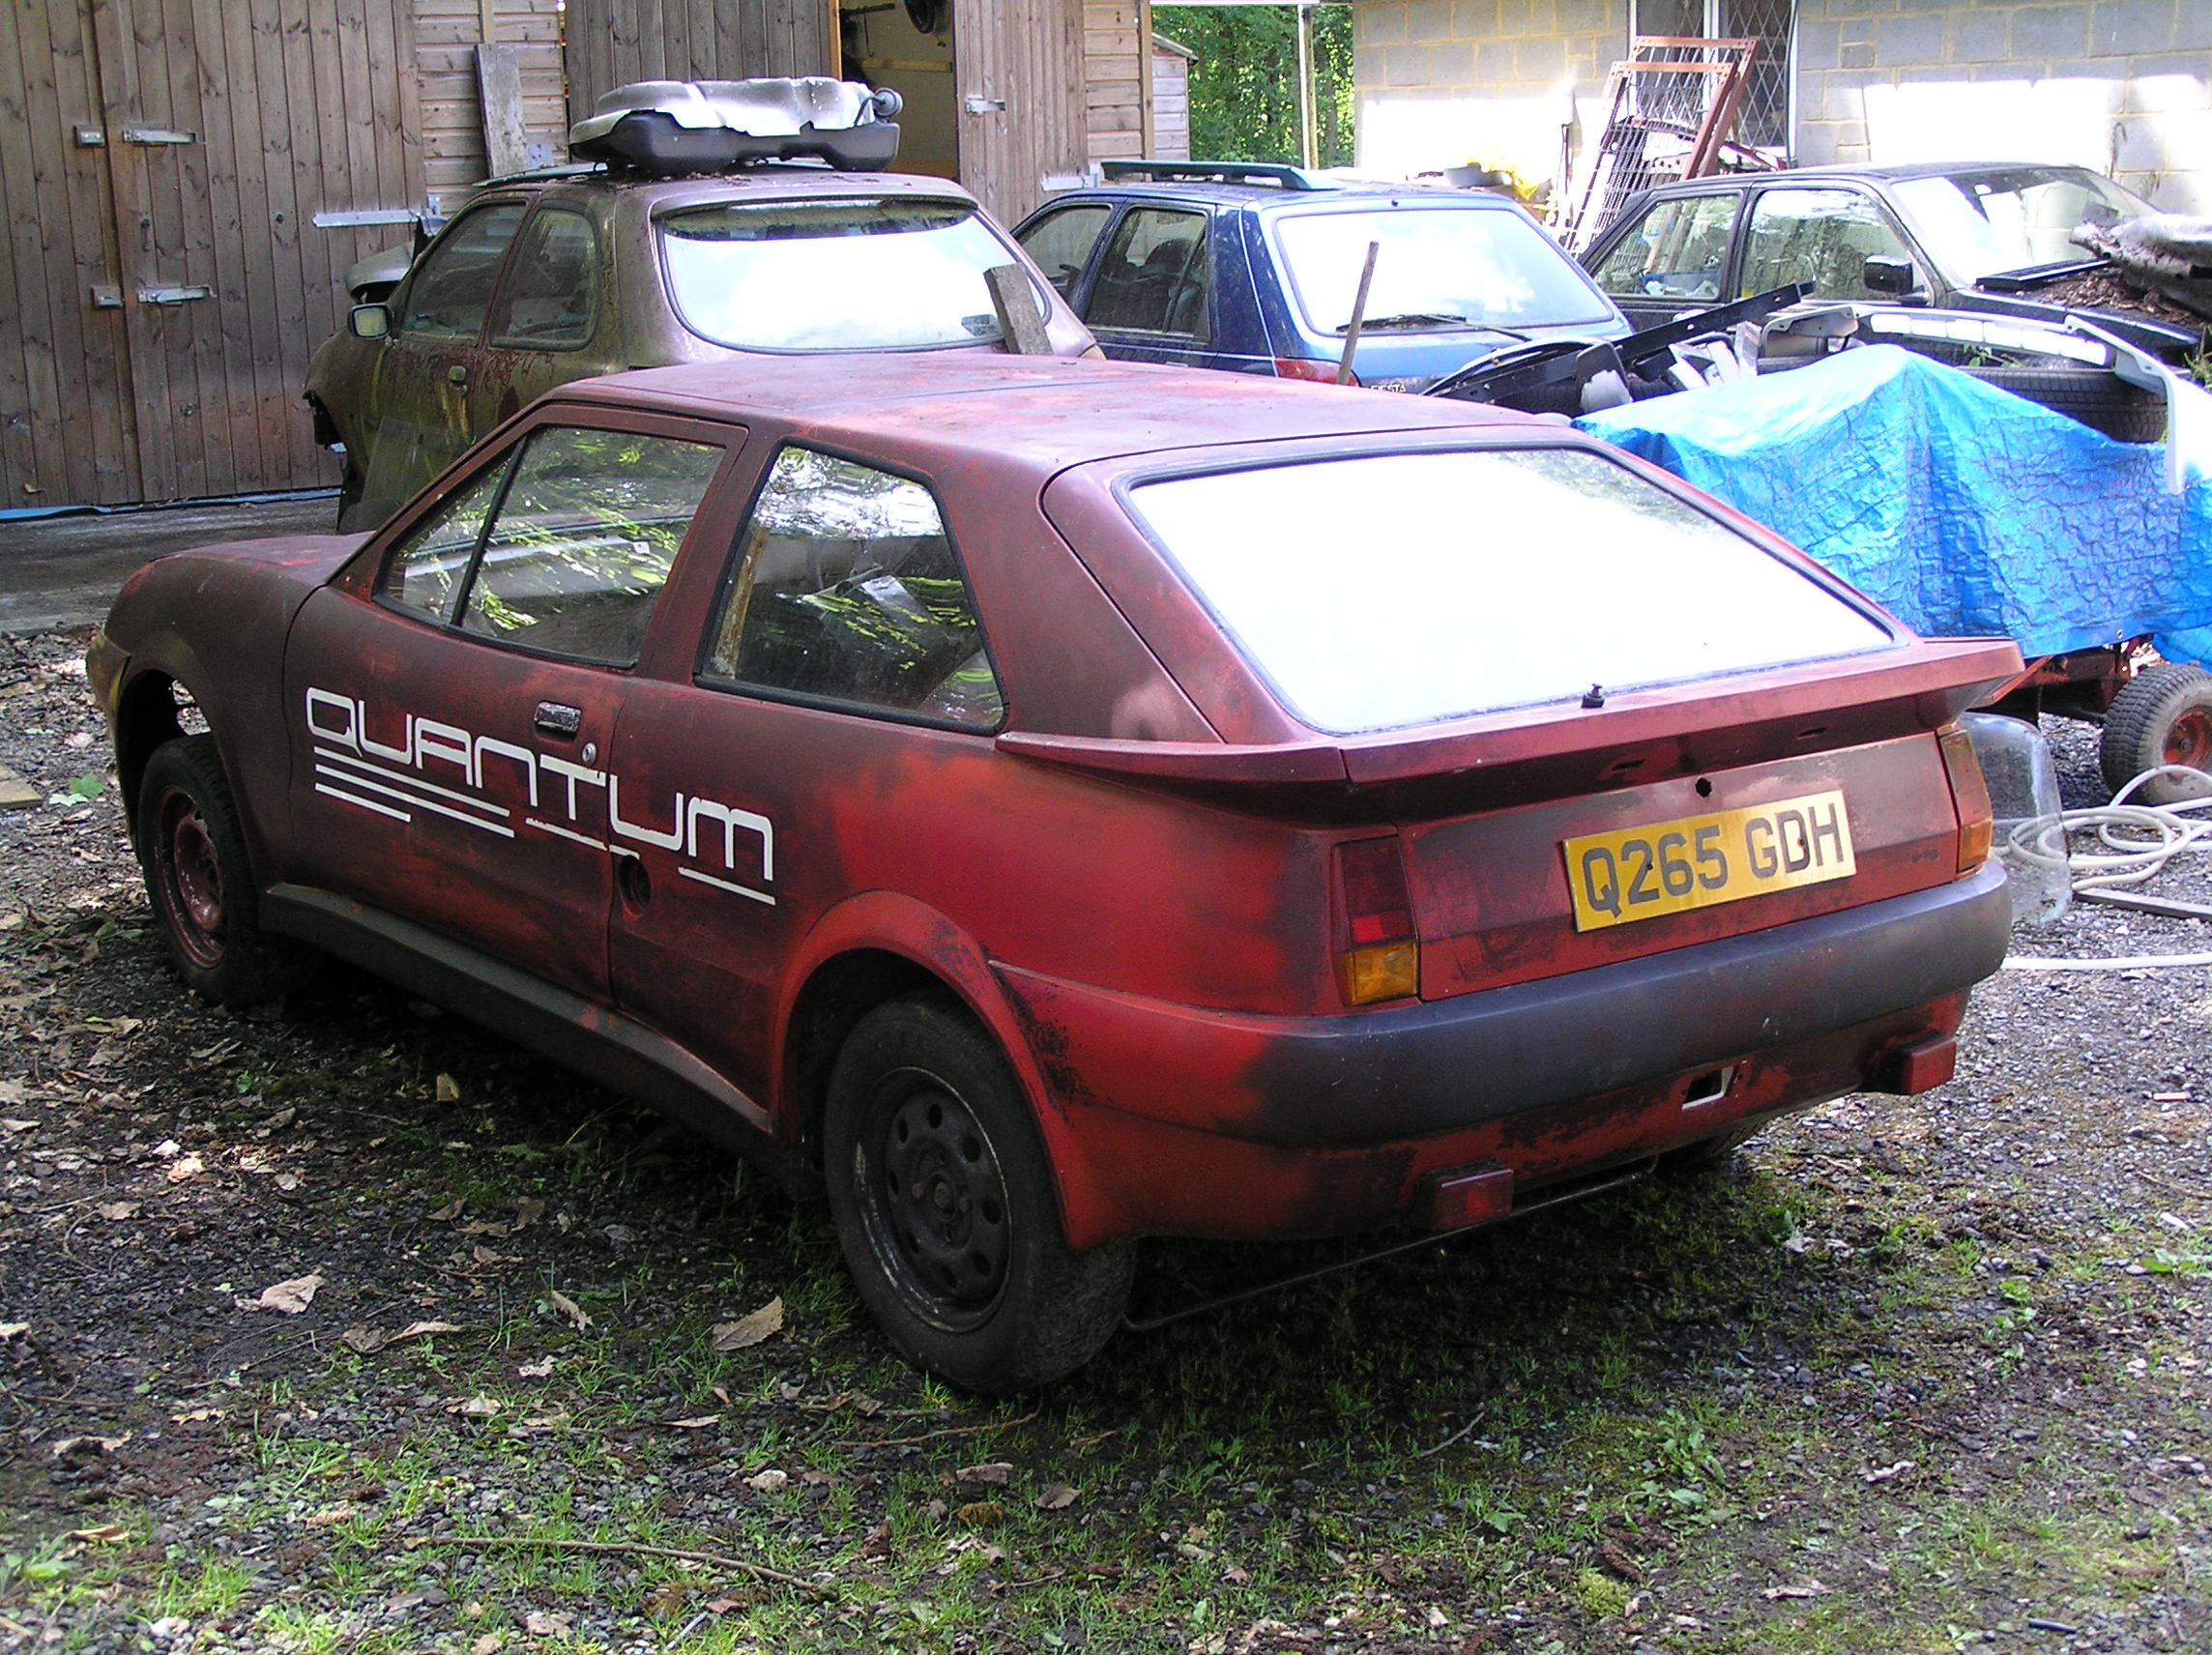 Quantum Coupé 003 needing TLC